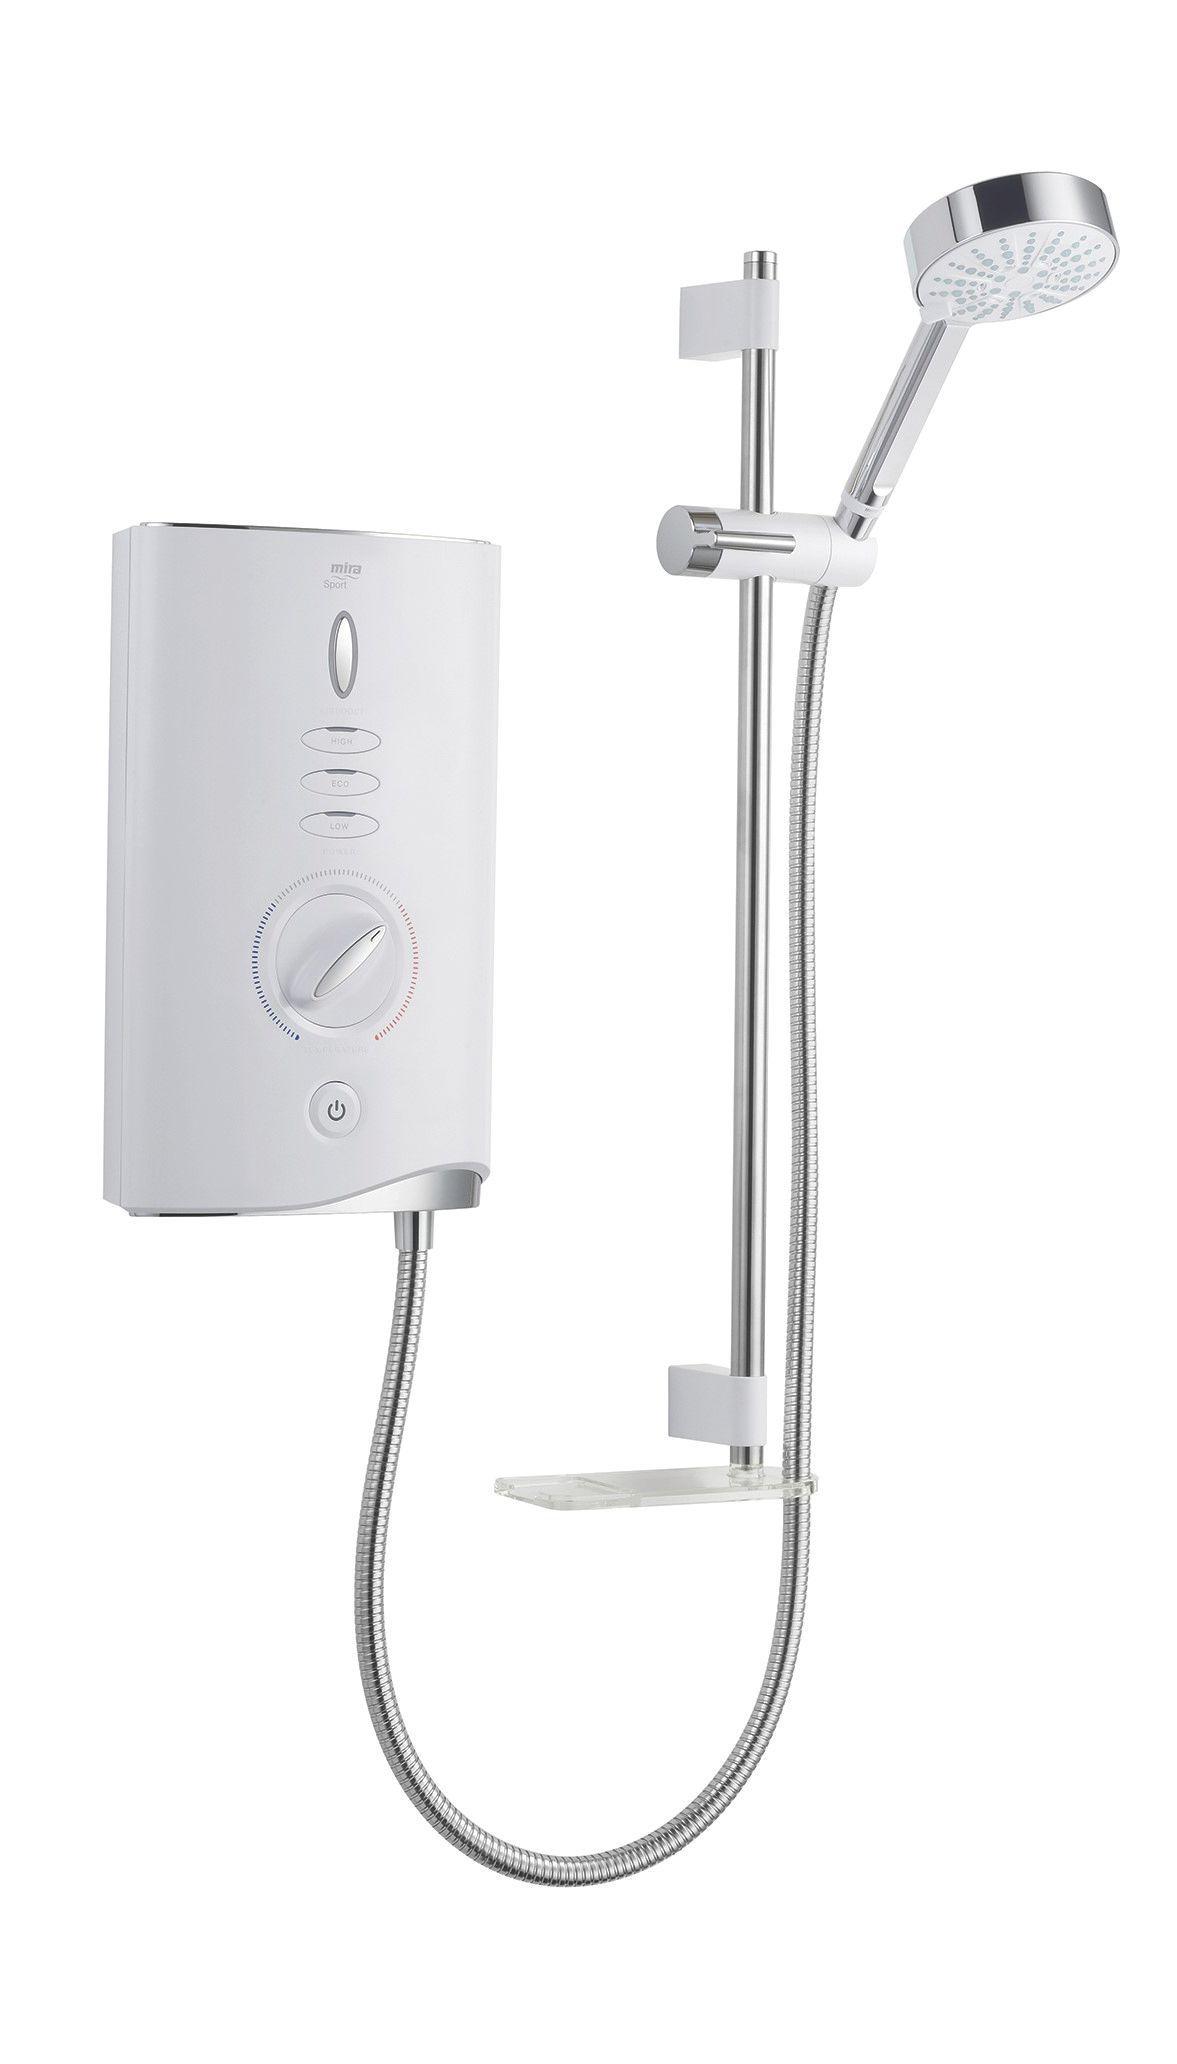 Mira Sport Max Airboost 9kw Electric Shower, White